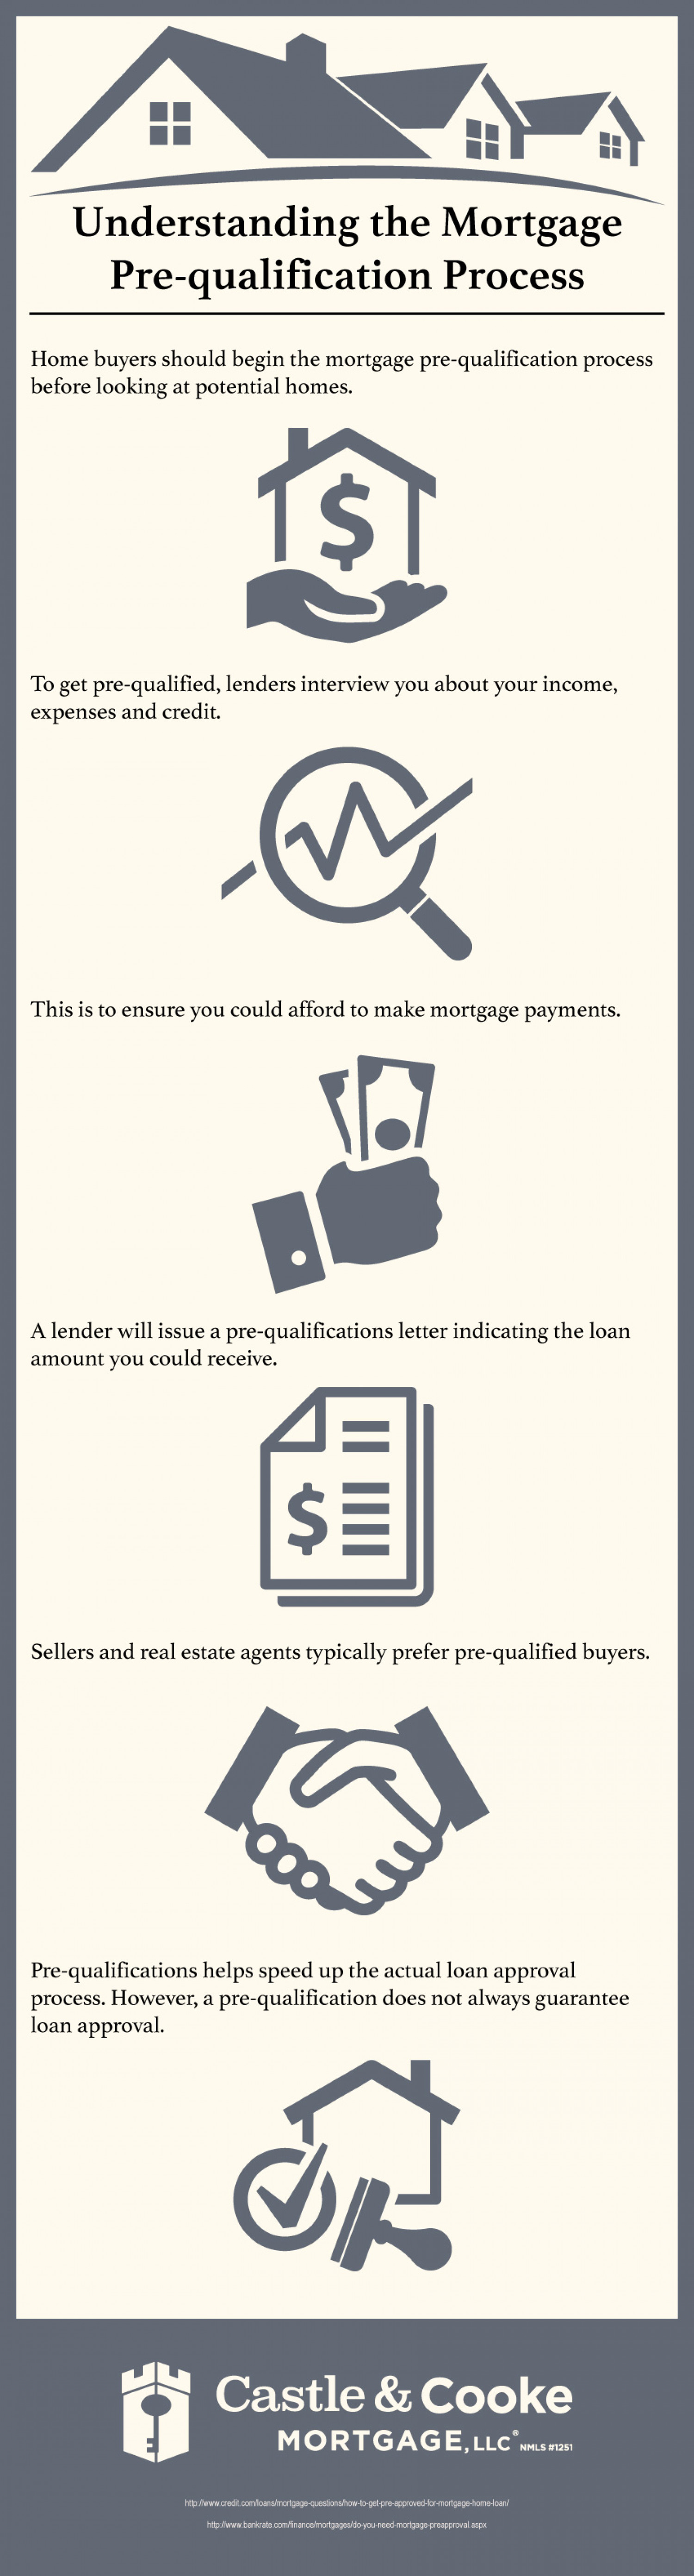 Understanding the Mortgage Pre-Qualification Process Infographic